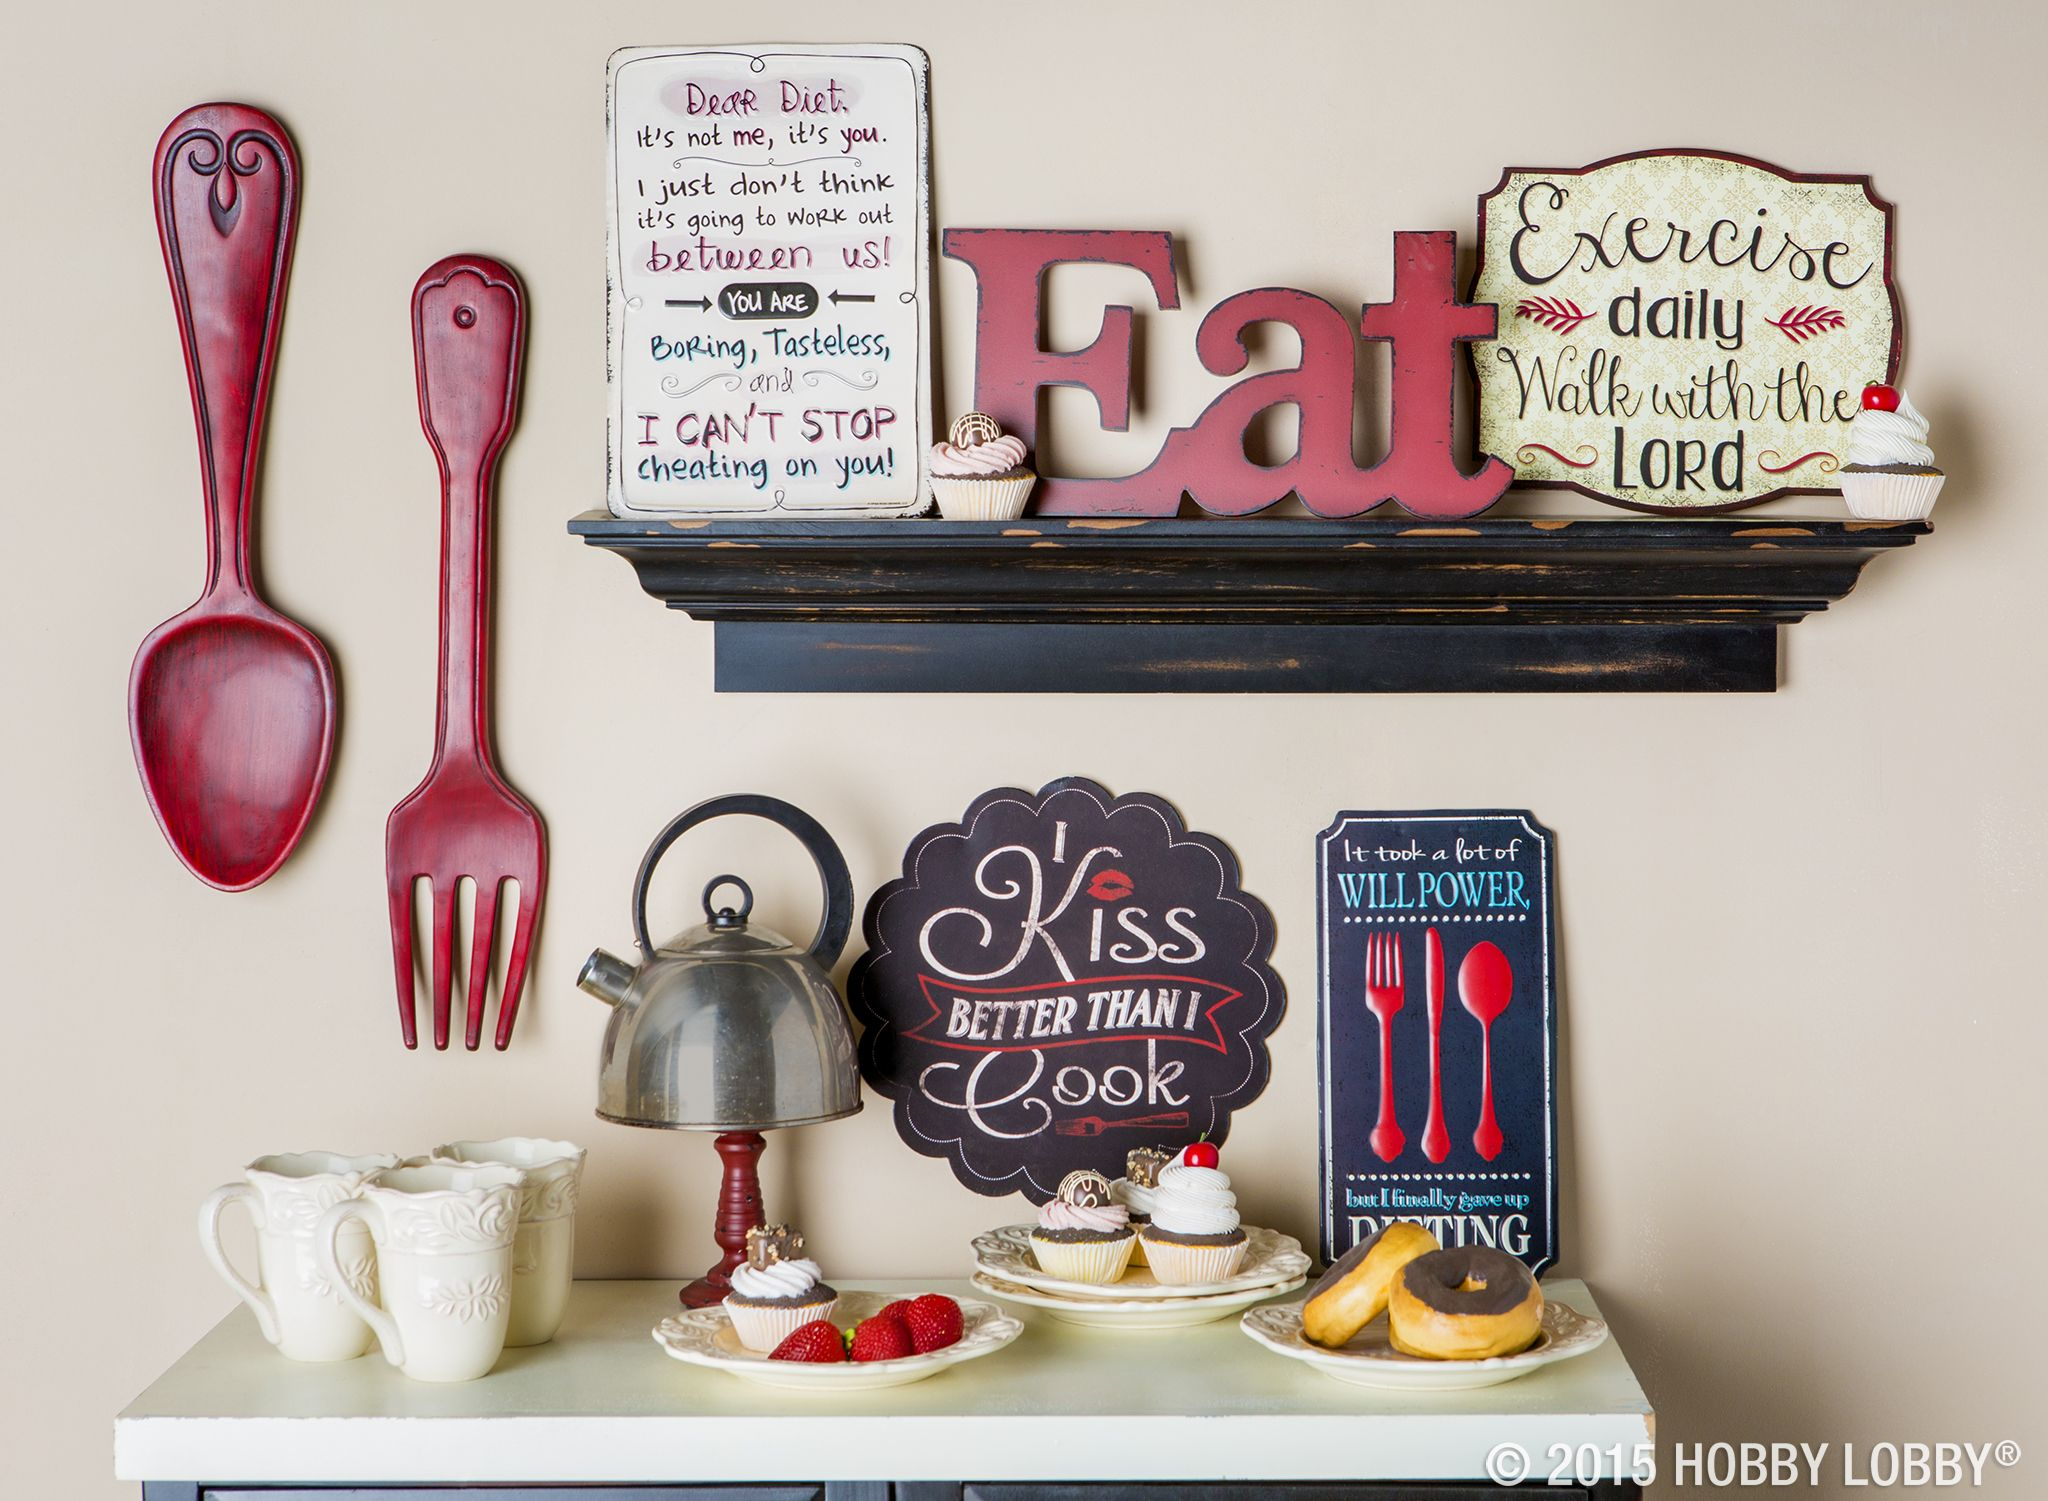 Charming Red Kitchen Decor Never Goes Out Of Style...especially With A Good Sense